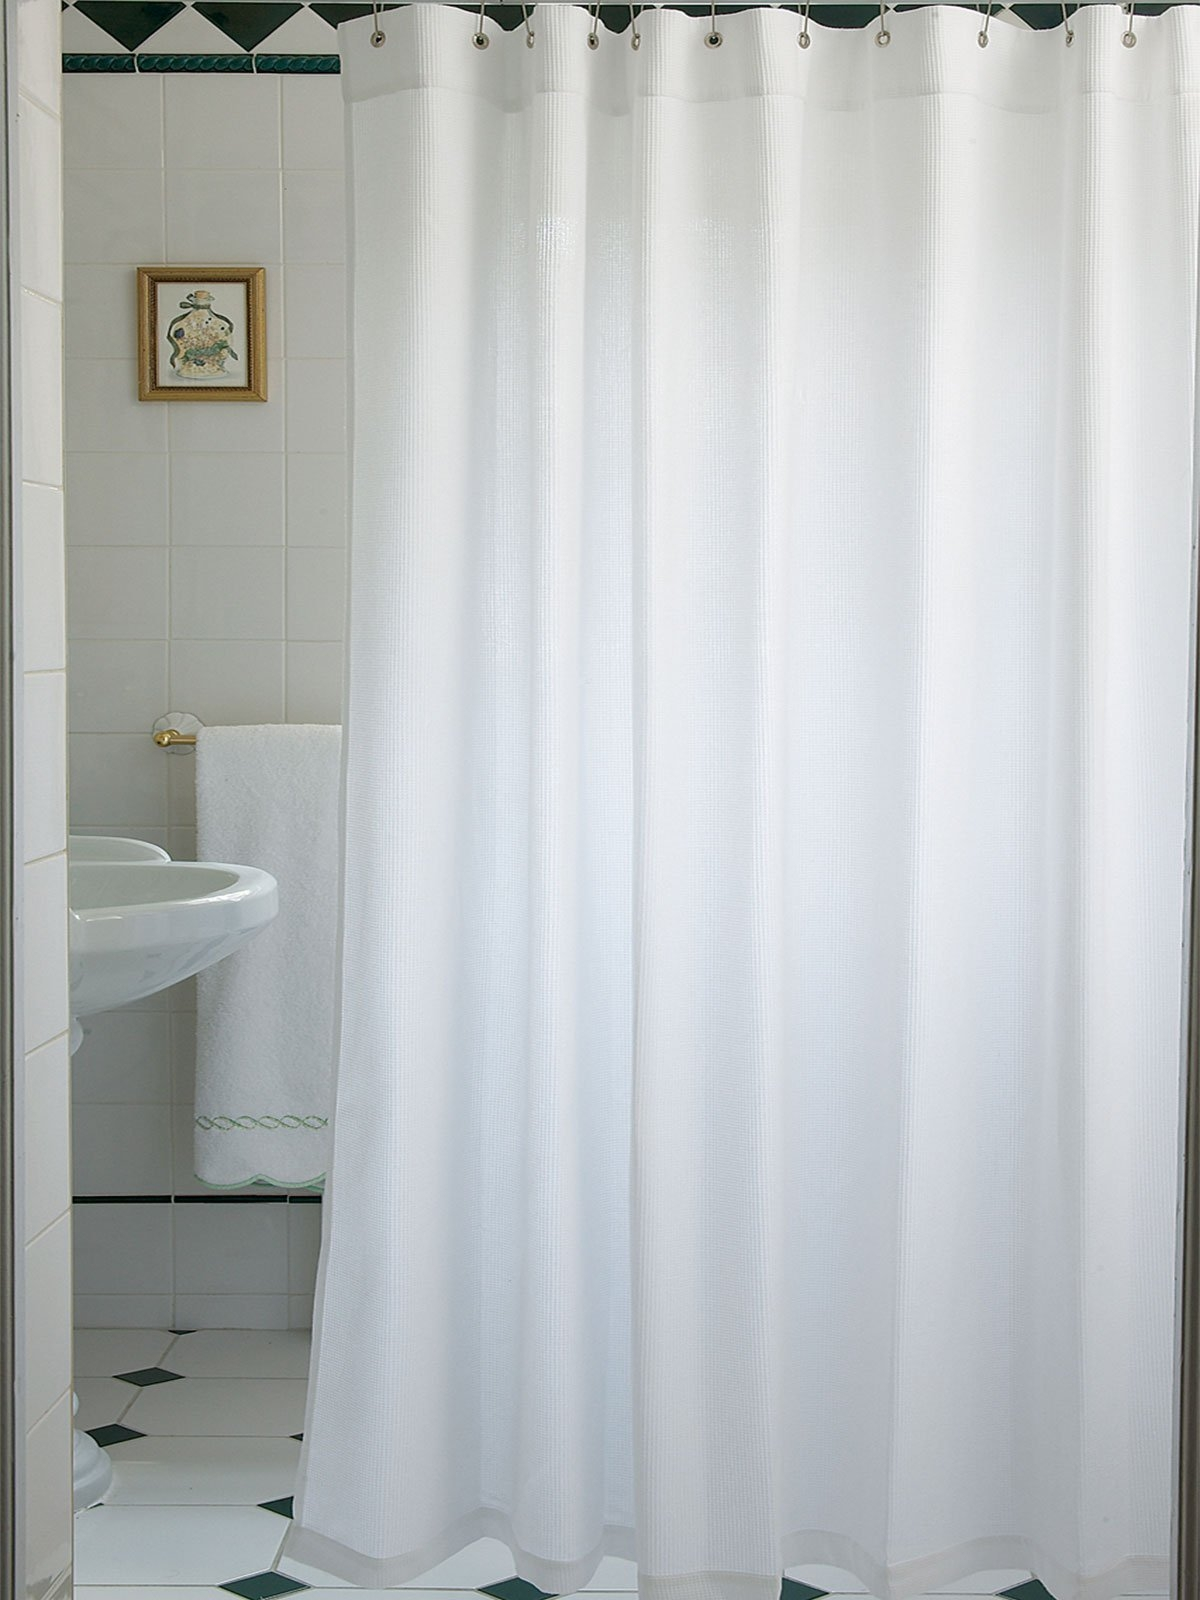 Extra long white shower curtain fabric curtain for Shower curtain savers